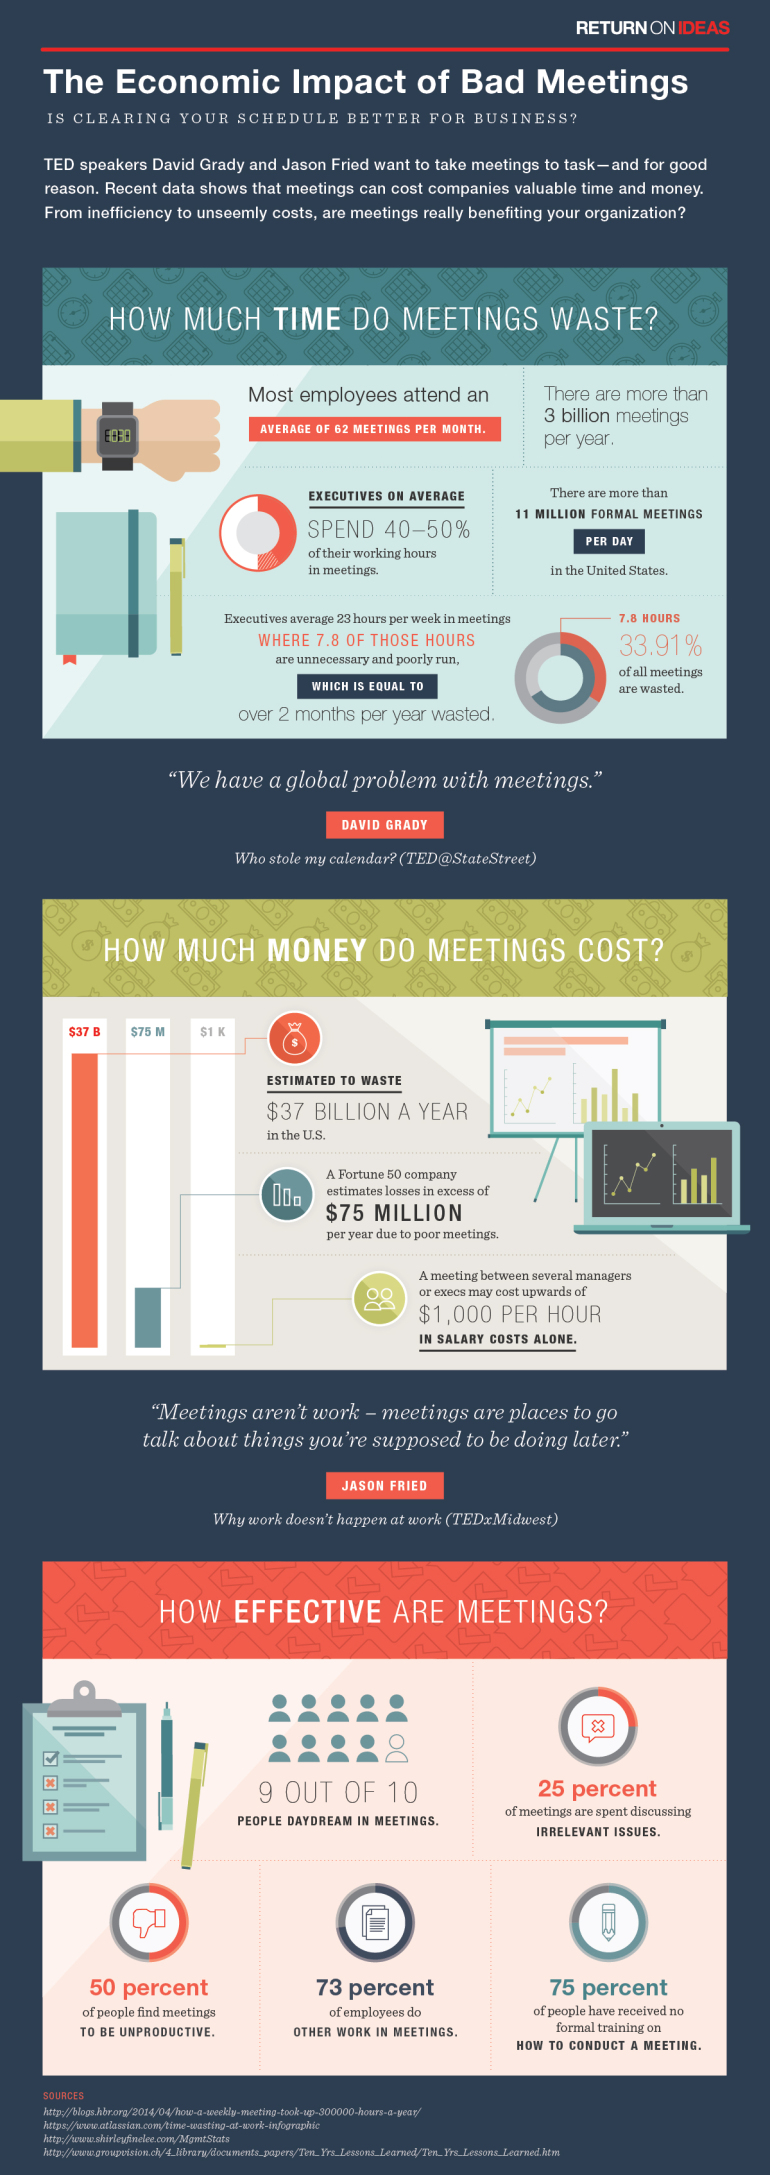 ted-meeting-infographic